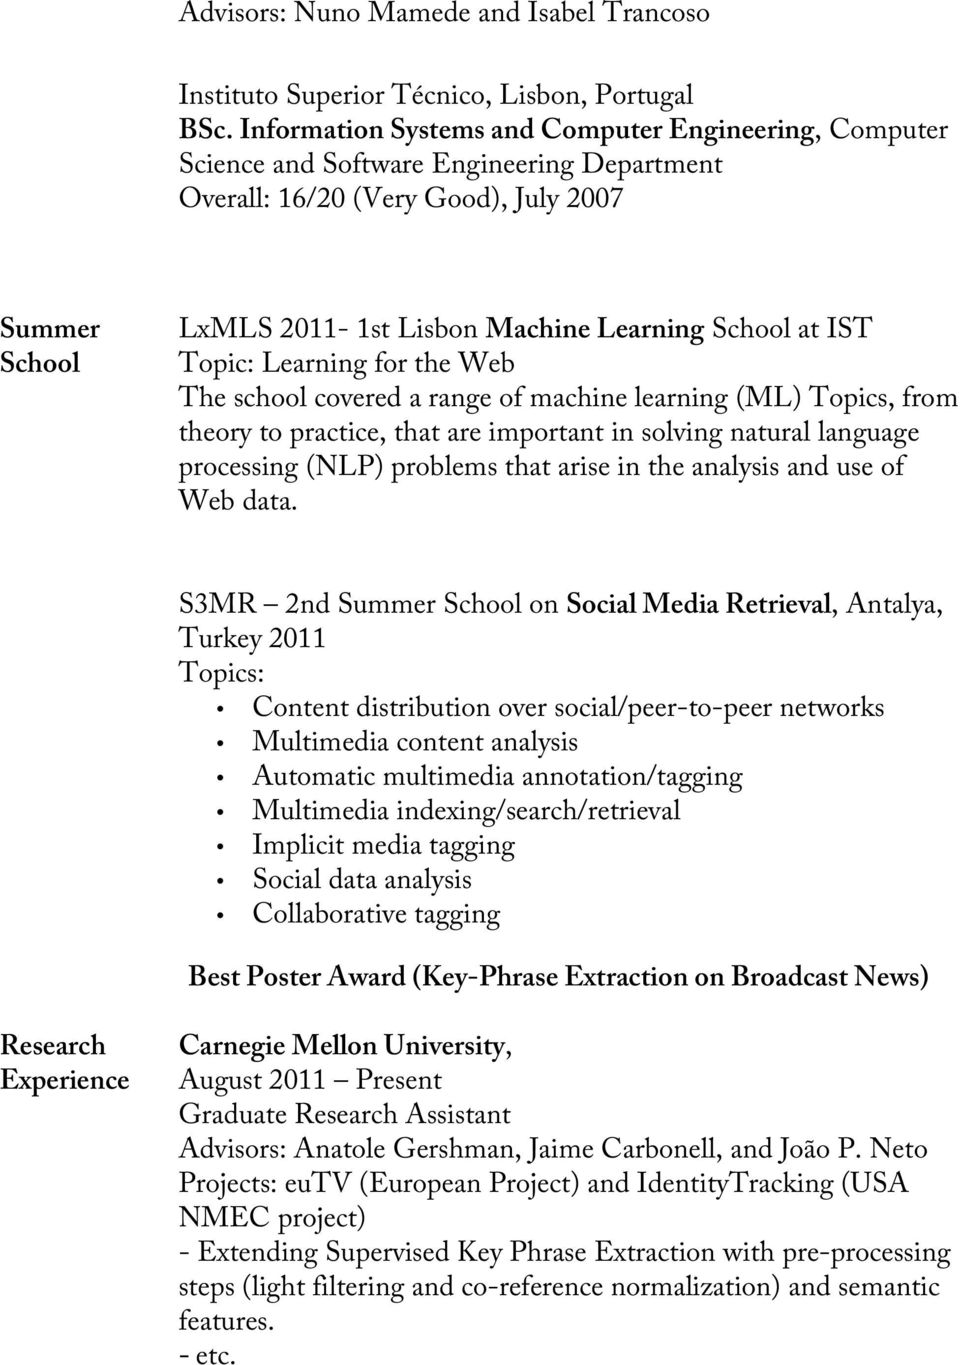 IST Topic: Learning for the Web The school covered a range of machine learning (ML) Topics, from theory to practice, that are important in solving natural language processing (NLP) problems that